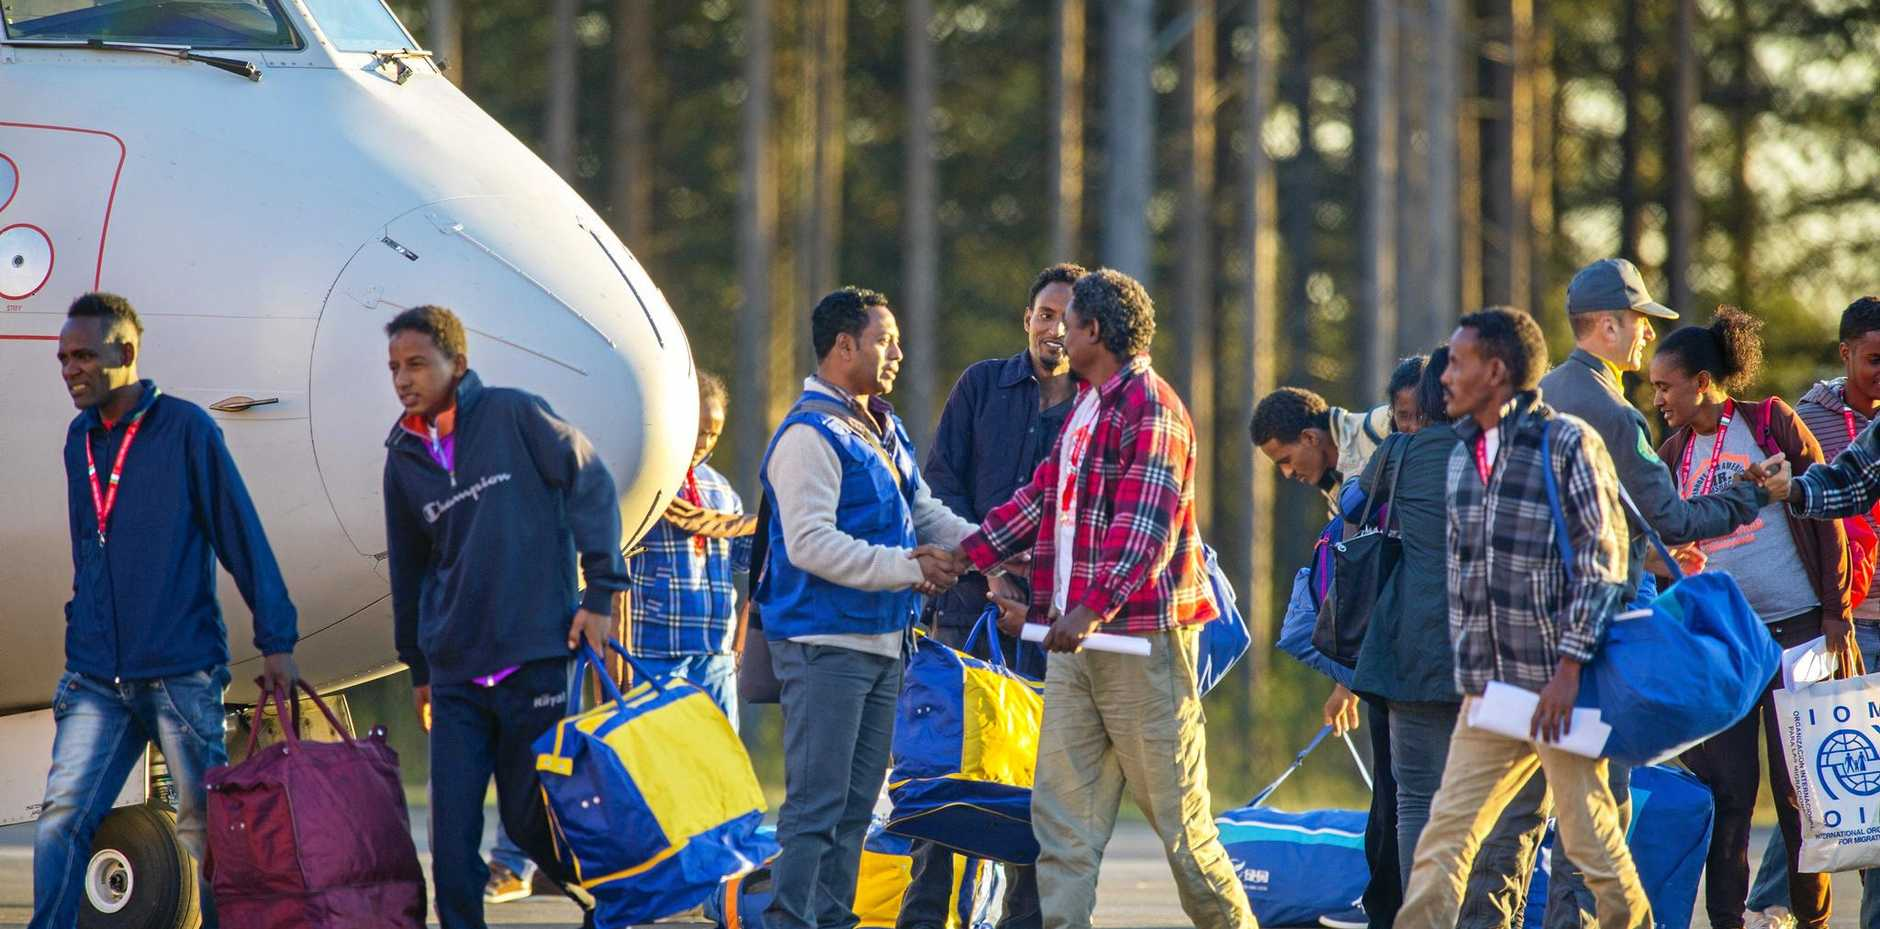 Eritrean asylum seekers arrive in Sweden for resettlement.